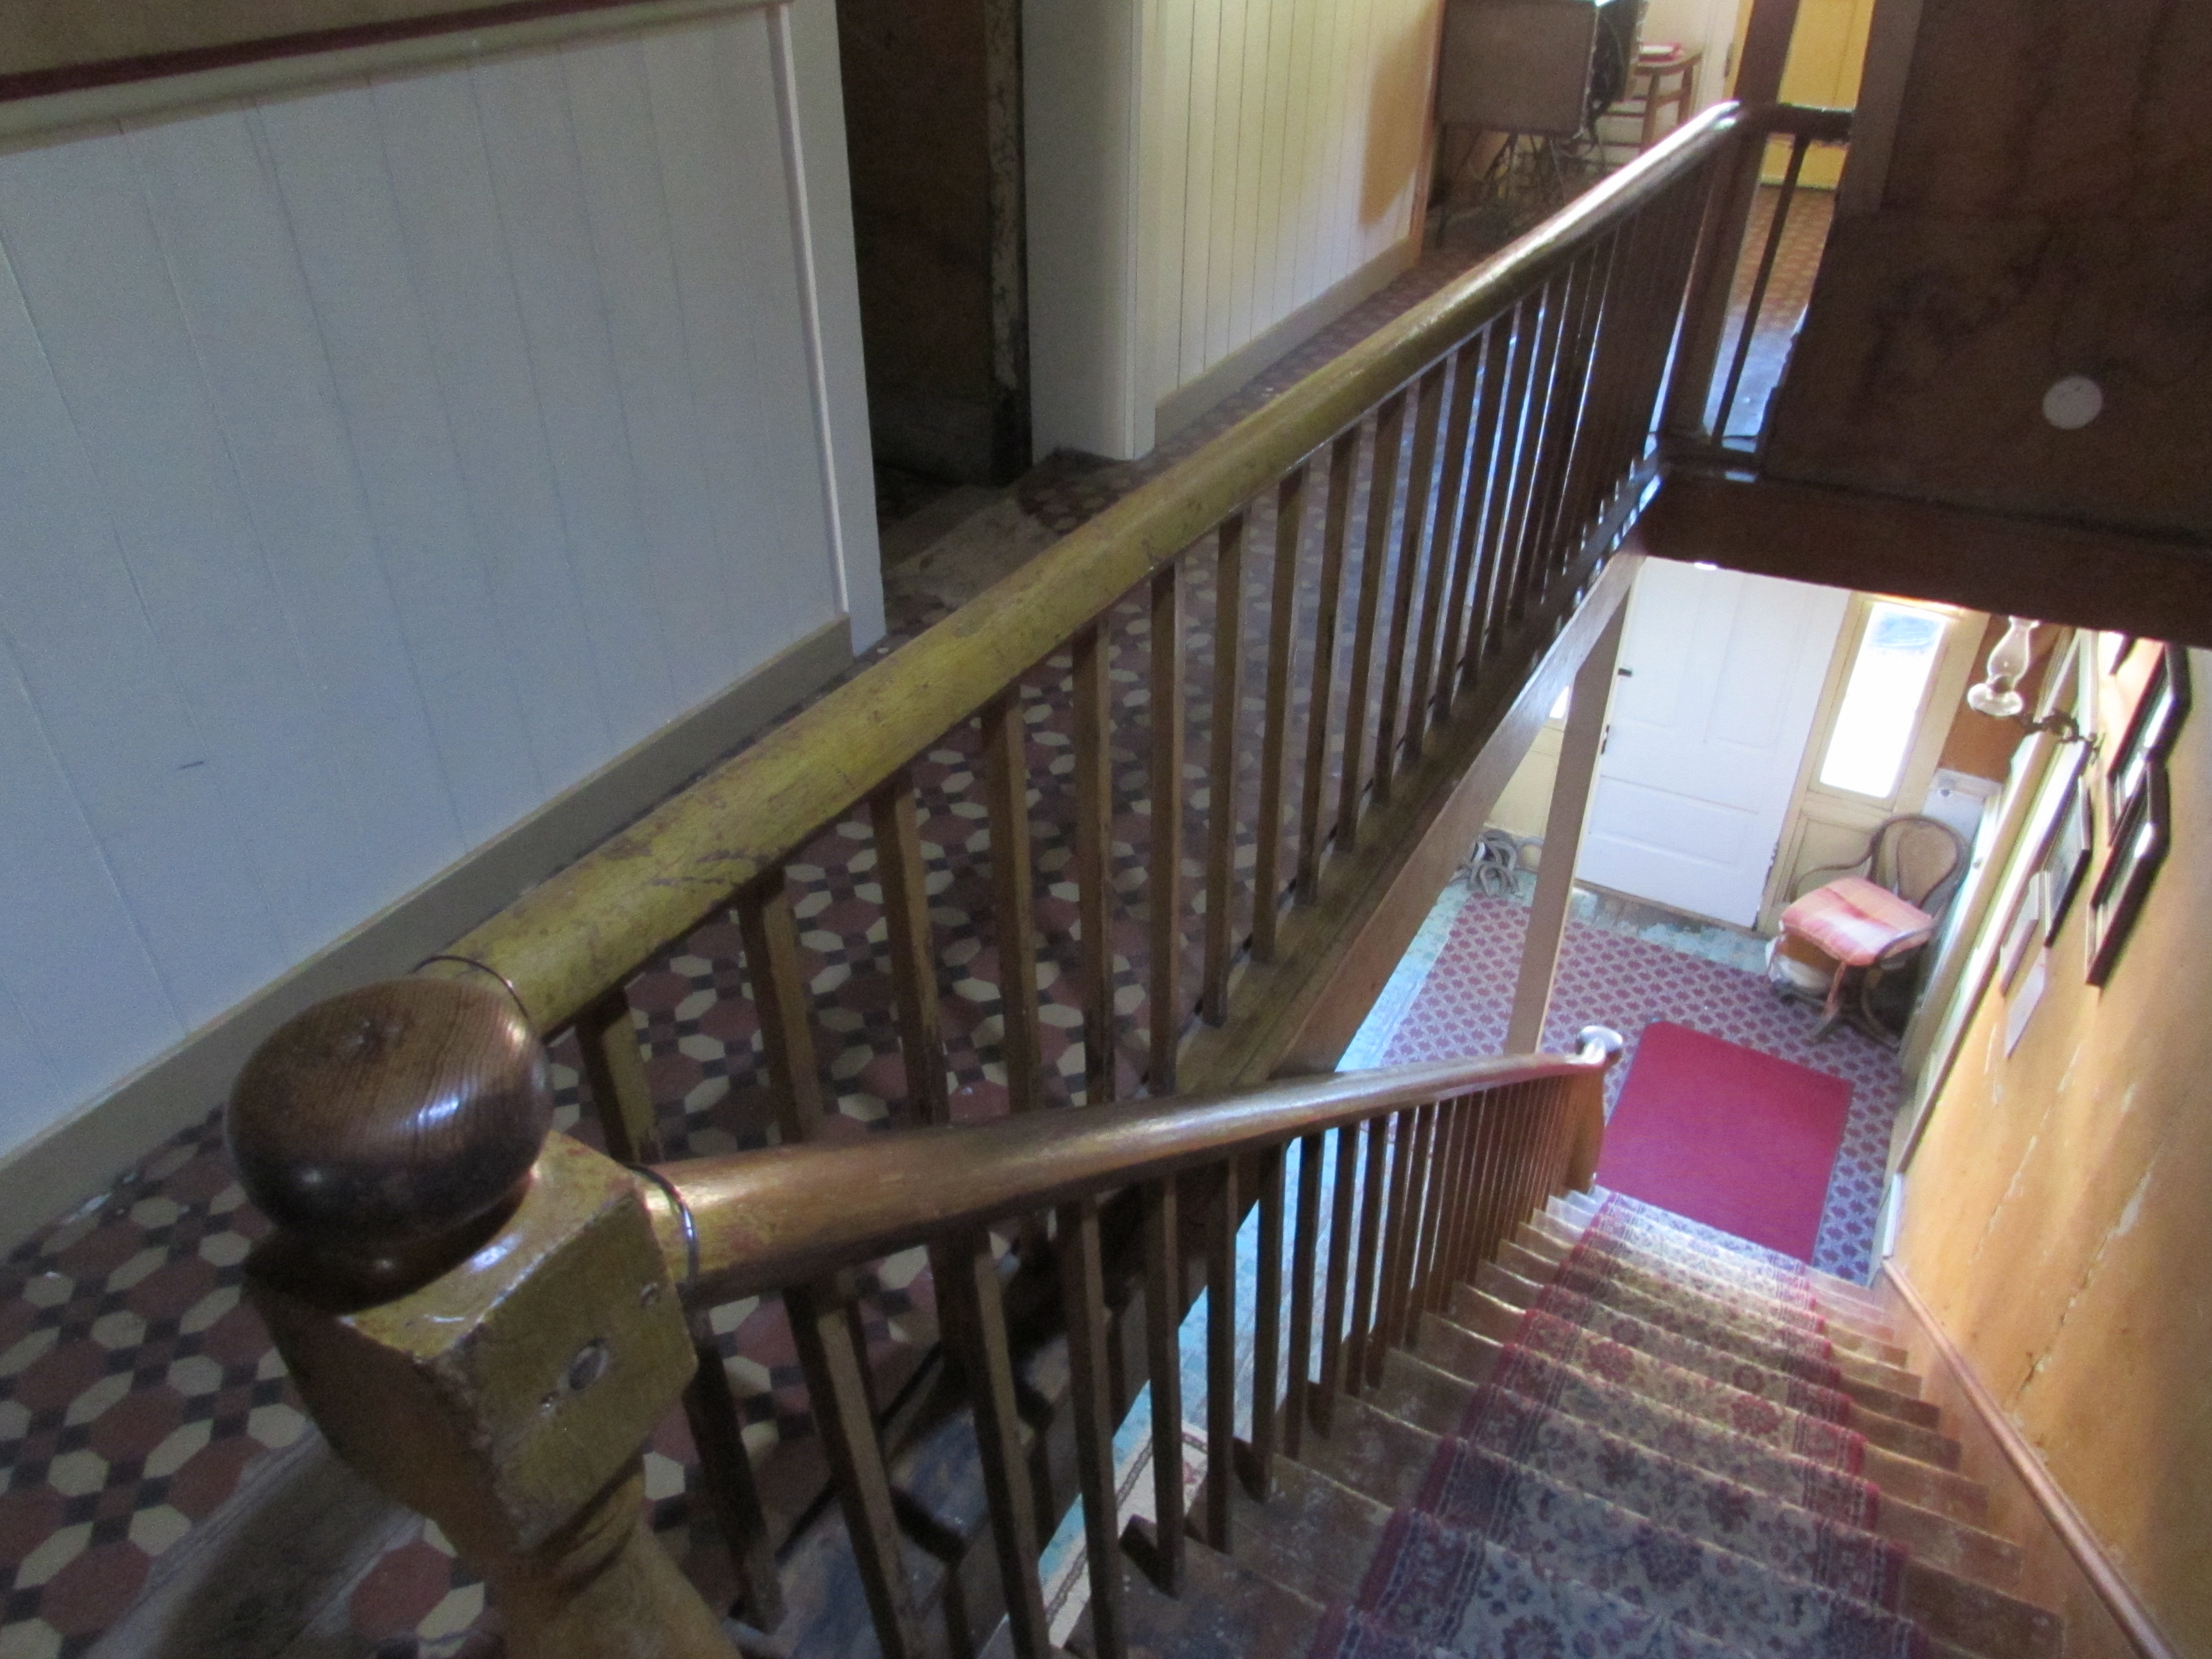 Historic Idaho Hotel staircase, as viewed from the second floor landing, outside guest rooms. Silver City, Idaho.